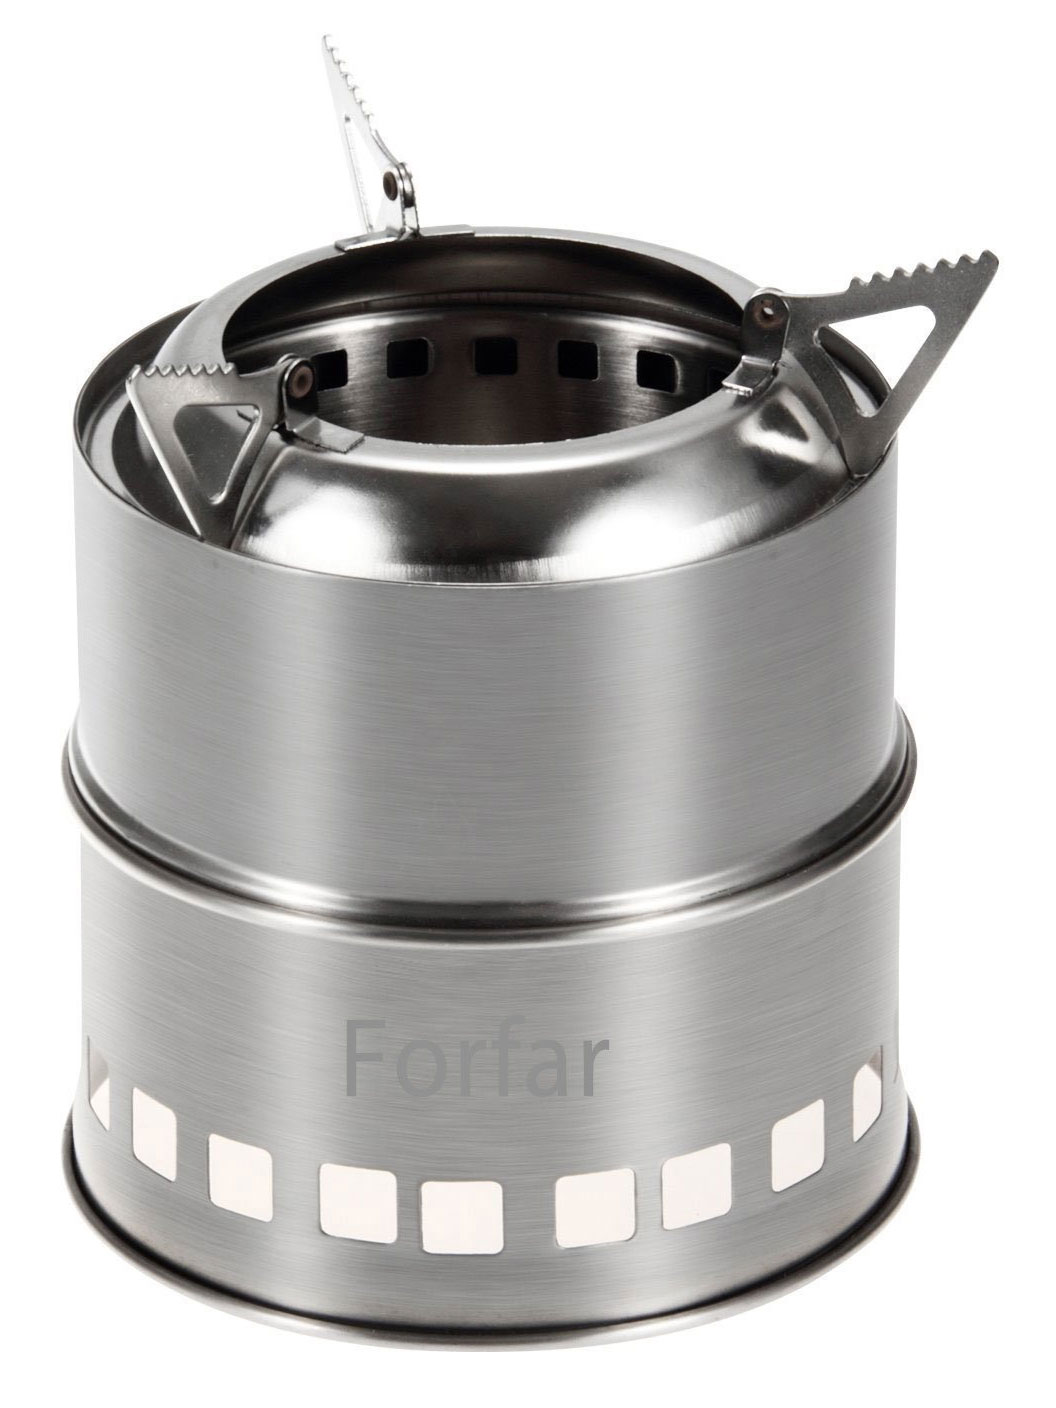 biolite stoves Forfar camping stove for trekking portable stove for hiking best camping top 5 stove for camping things to take